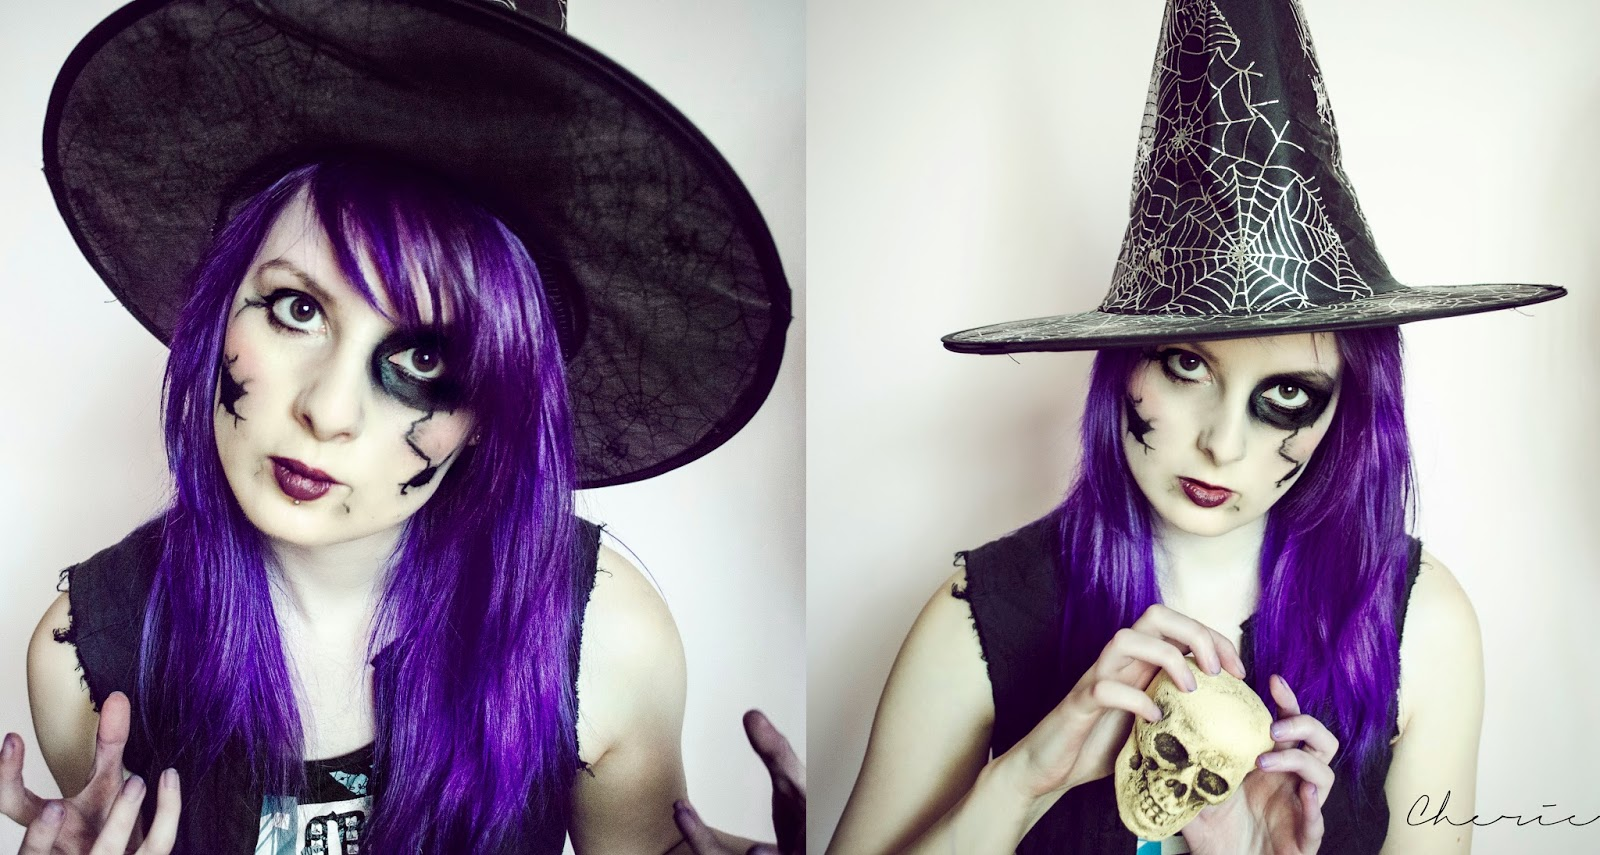 Witch makeup ideas